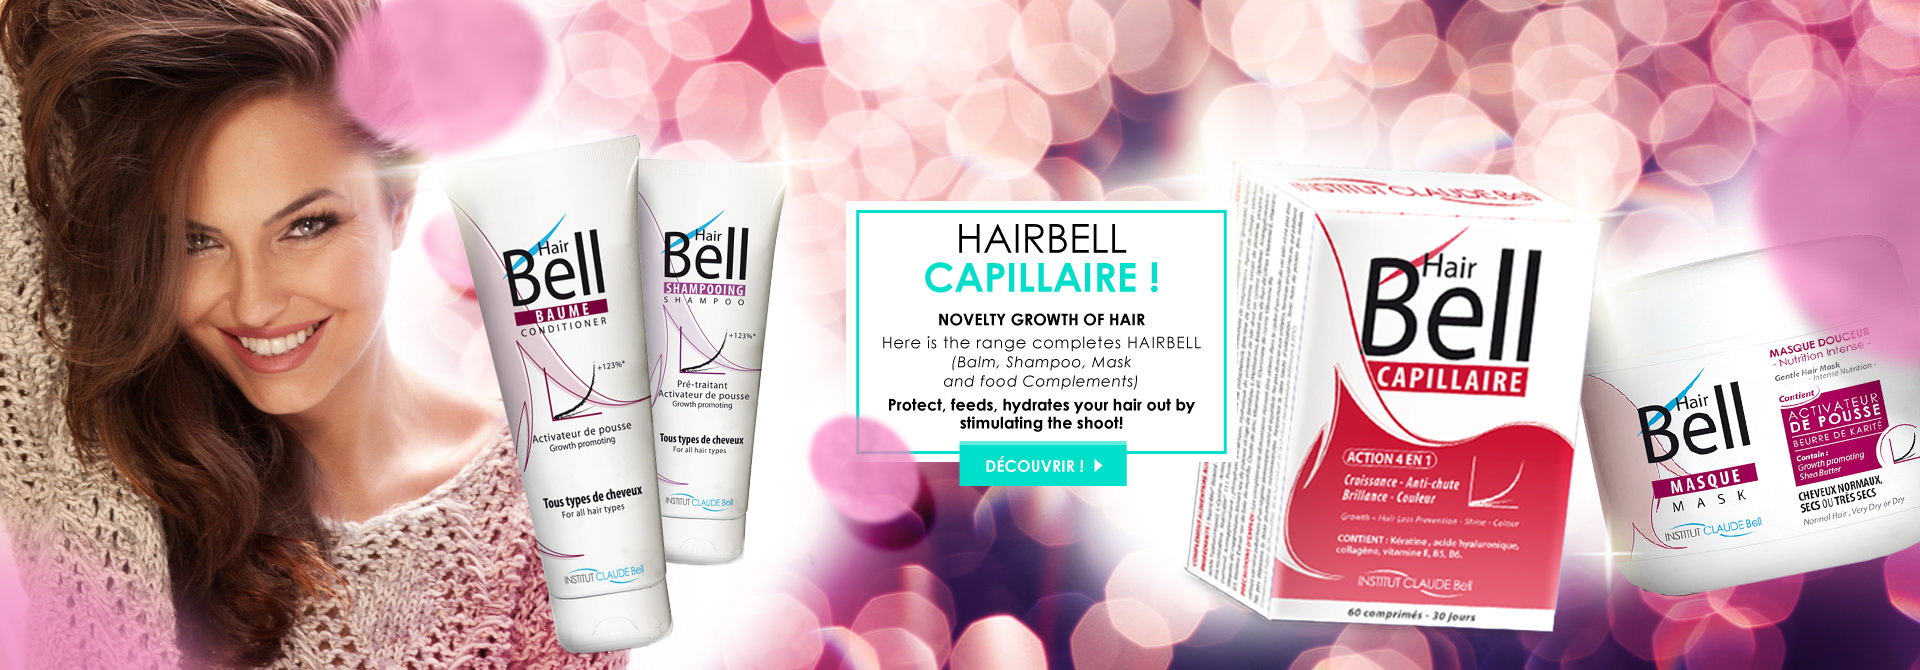 HAIRBELL CAPILLAIRE !  NOVELTY GROWTH OF HAIR  Here is the range completes HAIRBELL (Balm, Shampoo, Mask  and food Complements)  Protect, feeds, hydrates your hair out by stimulating the shoot!